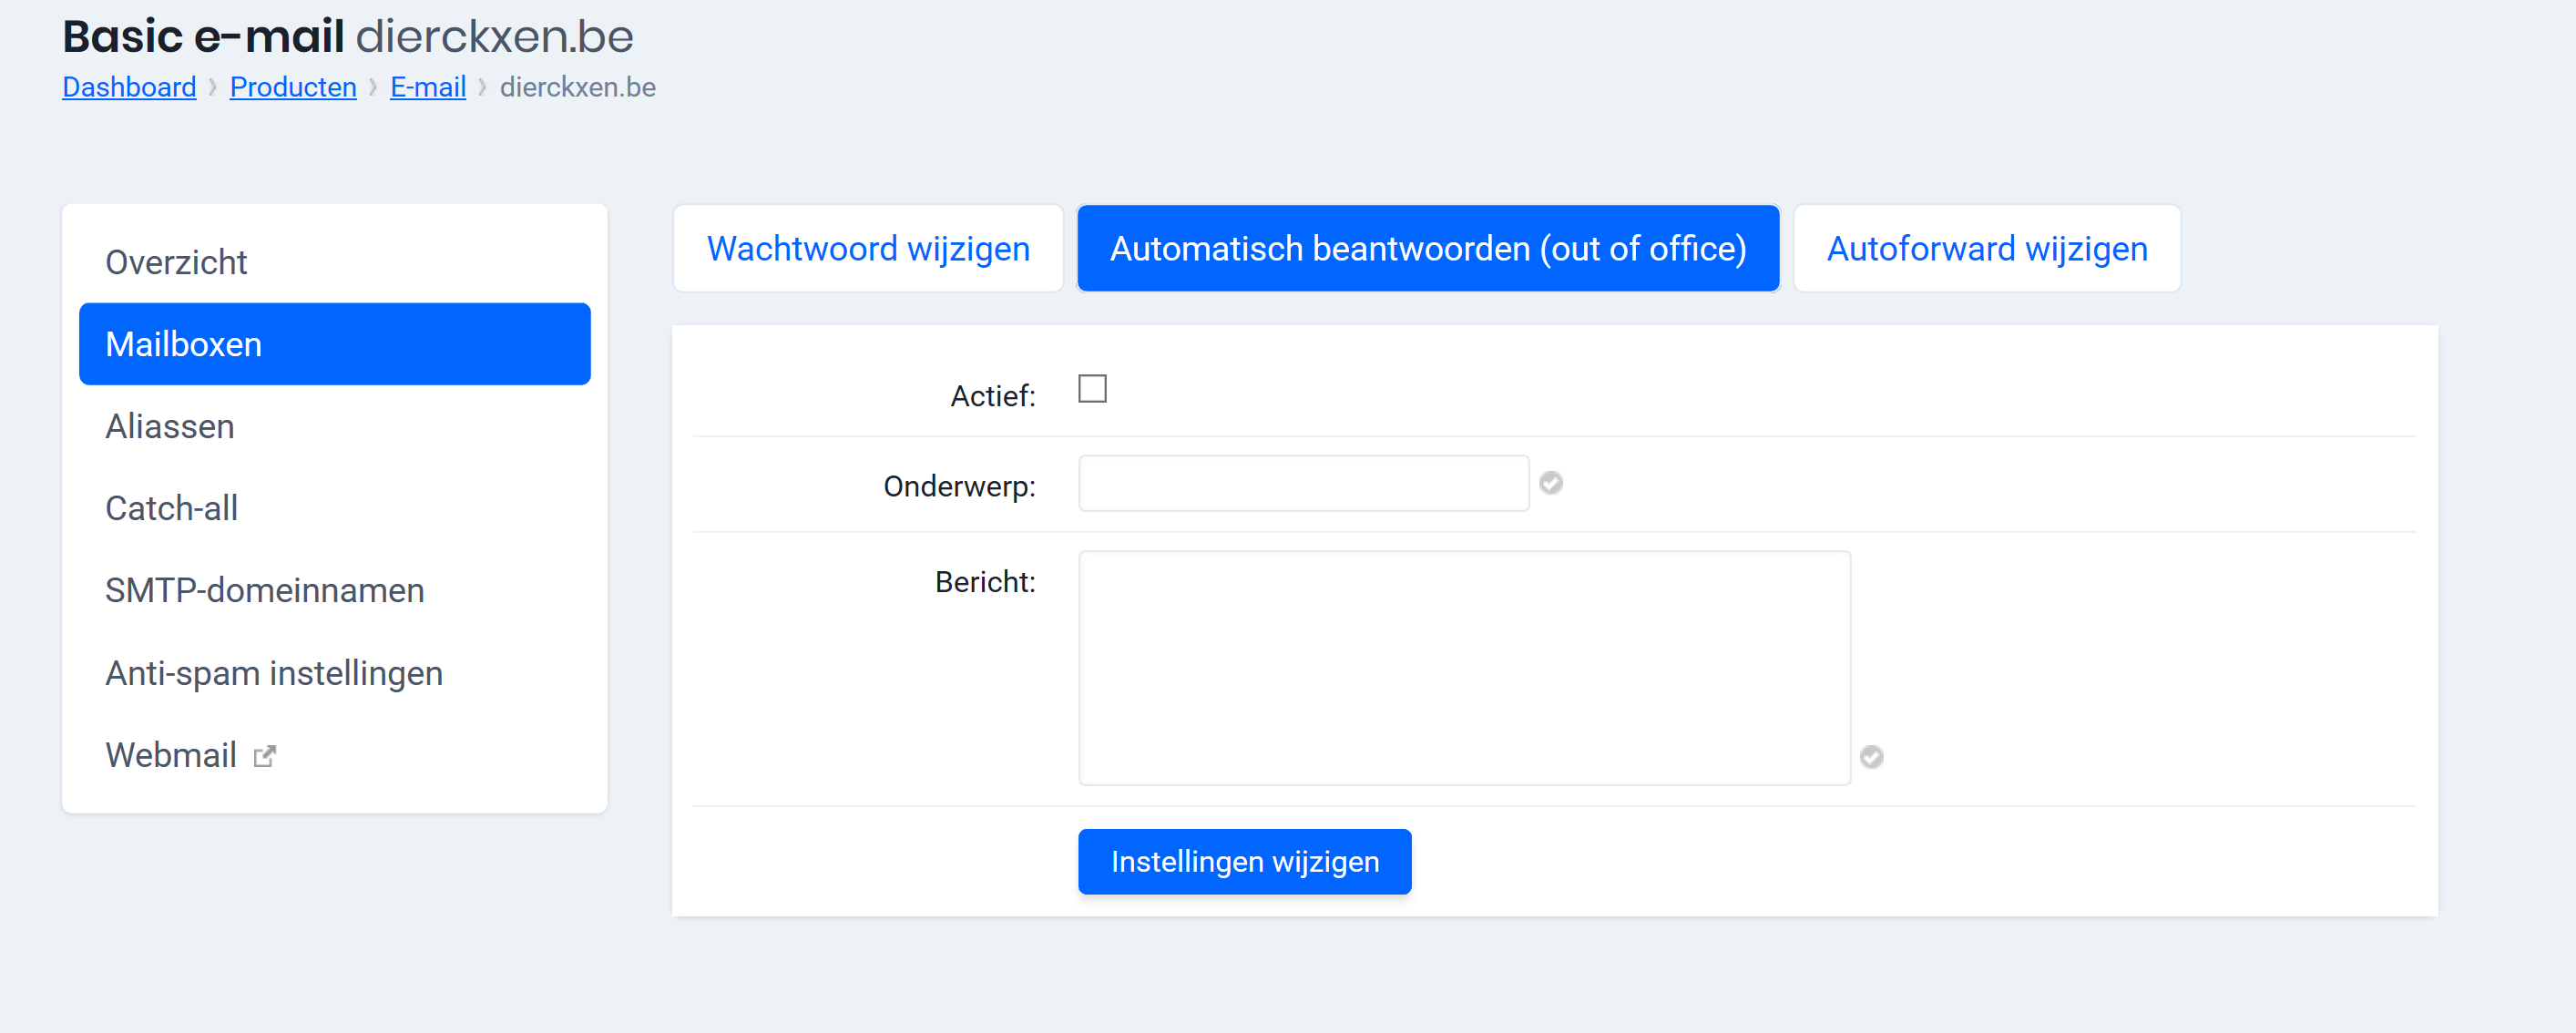 Tabblad Automatisch beantwoorden (out of office)